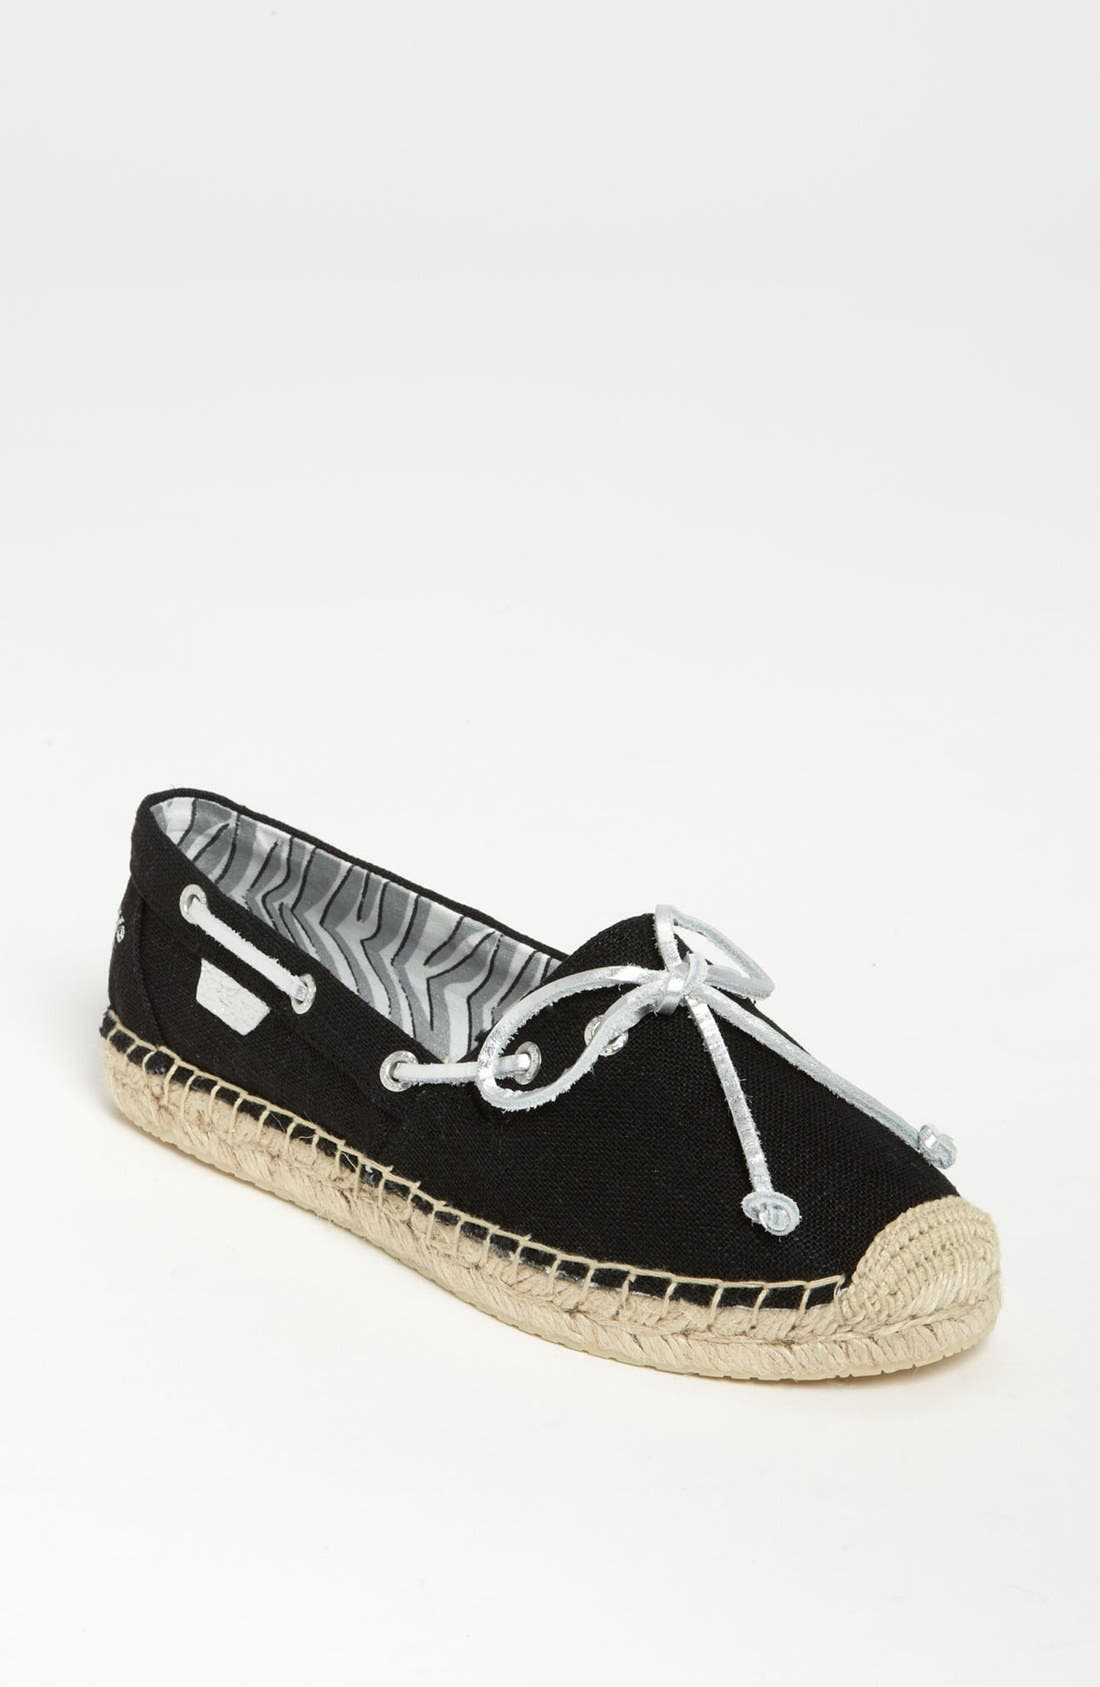 Alternate Image 1 Selected - Sperry 'Katama' Flat